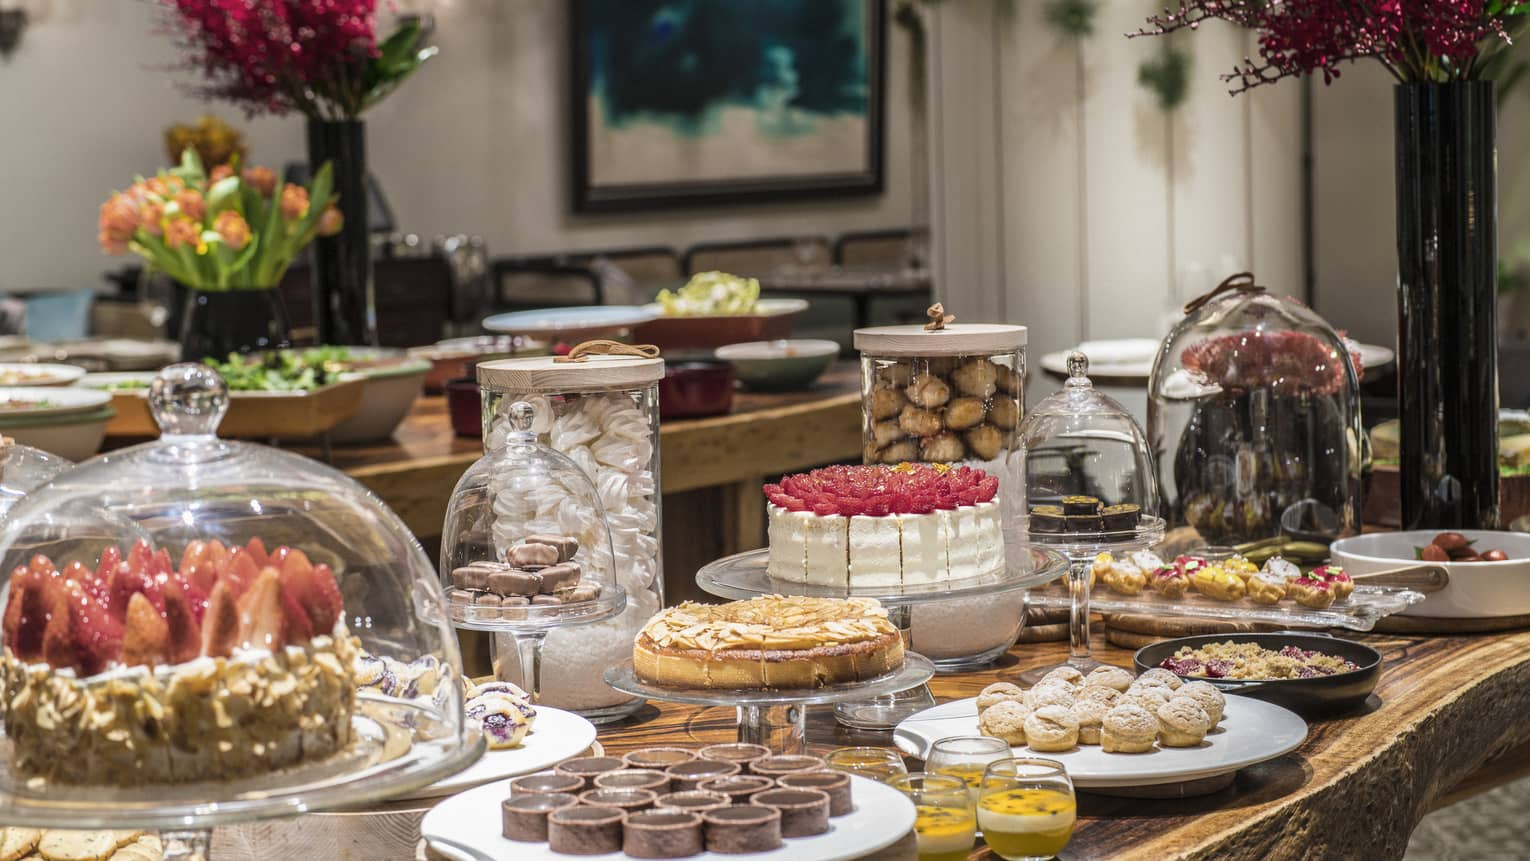 An arrangement of a variety of decadent desserts including cakes, tarts and soufflés